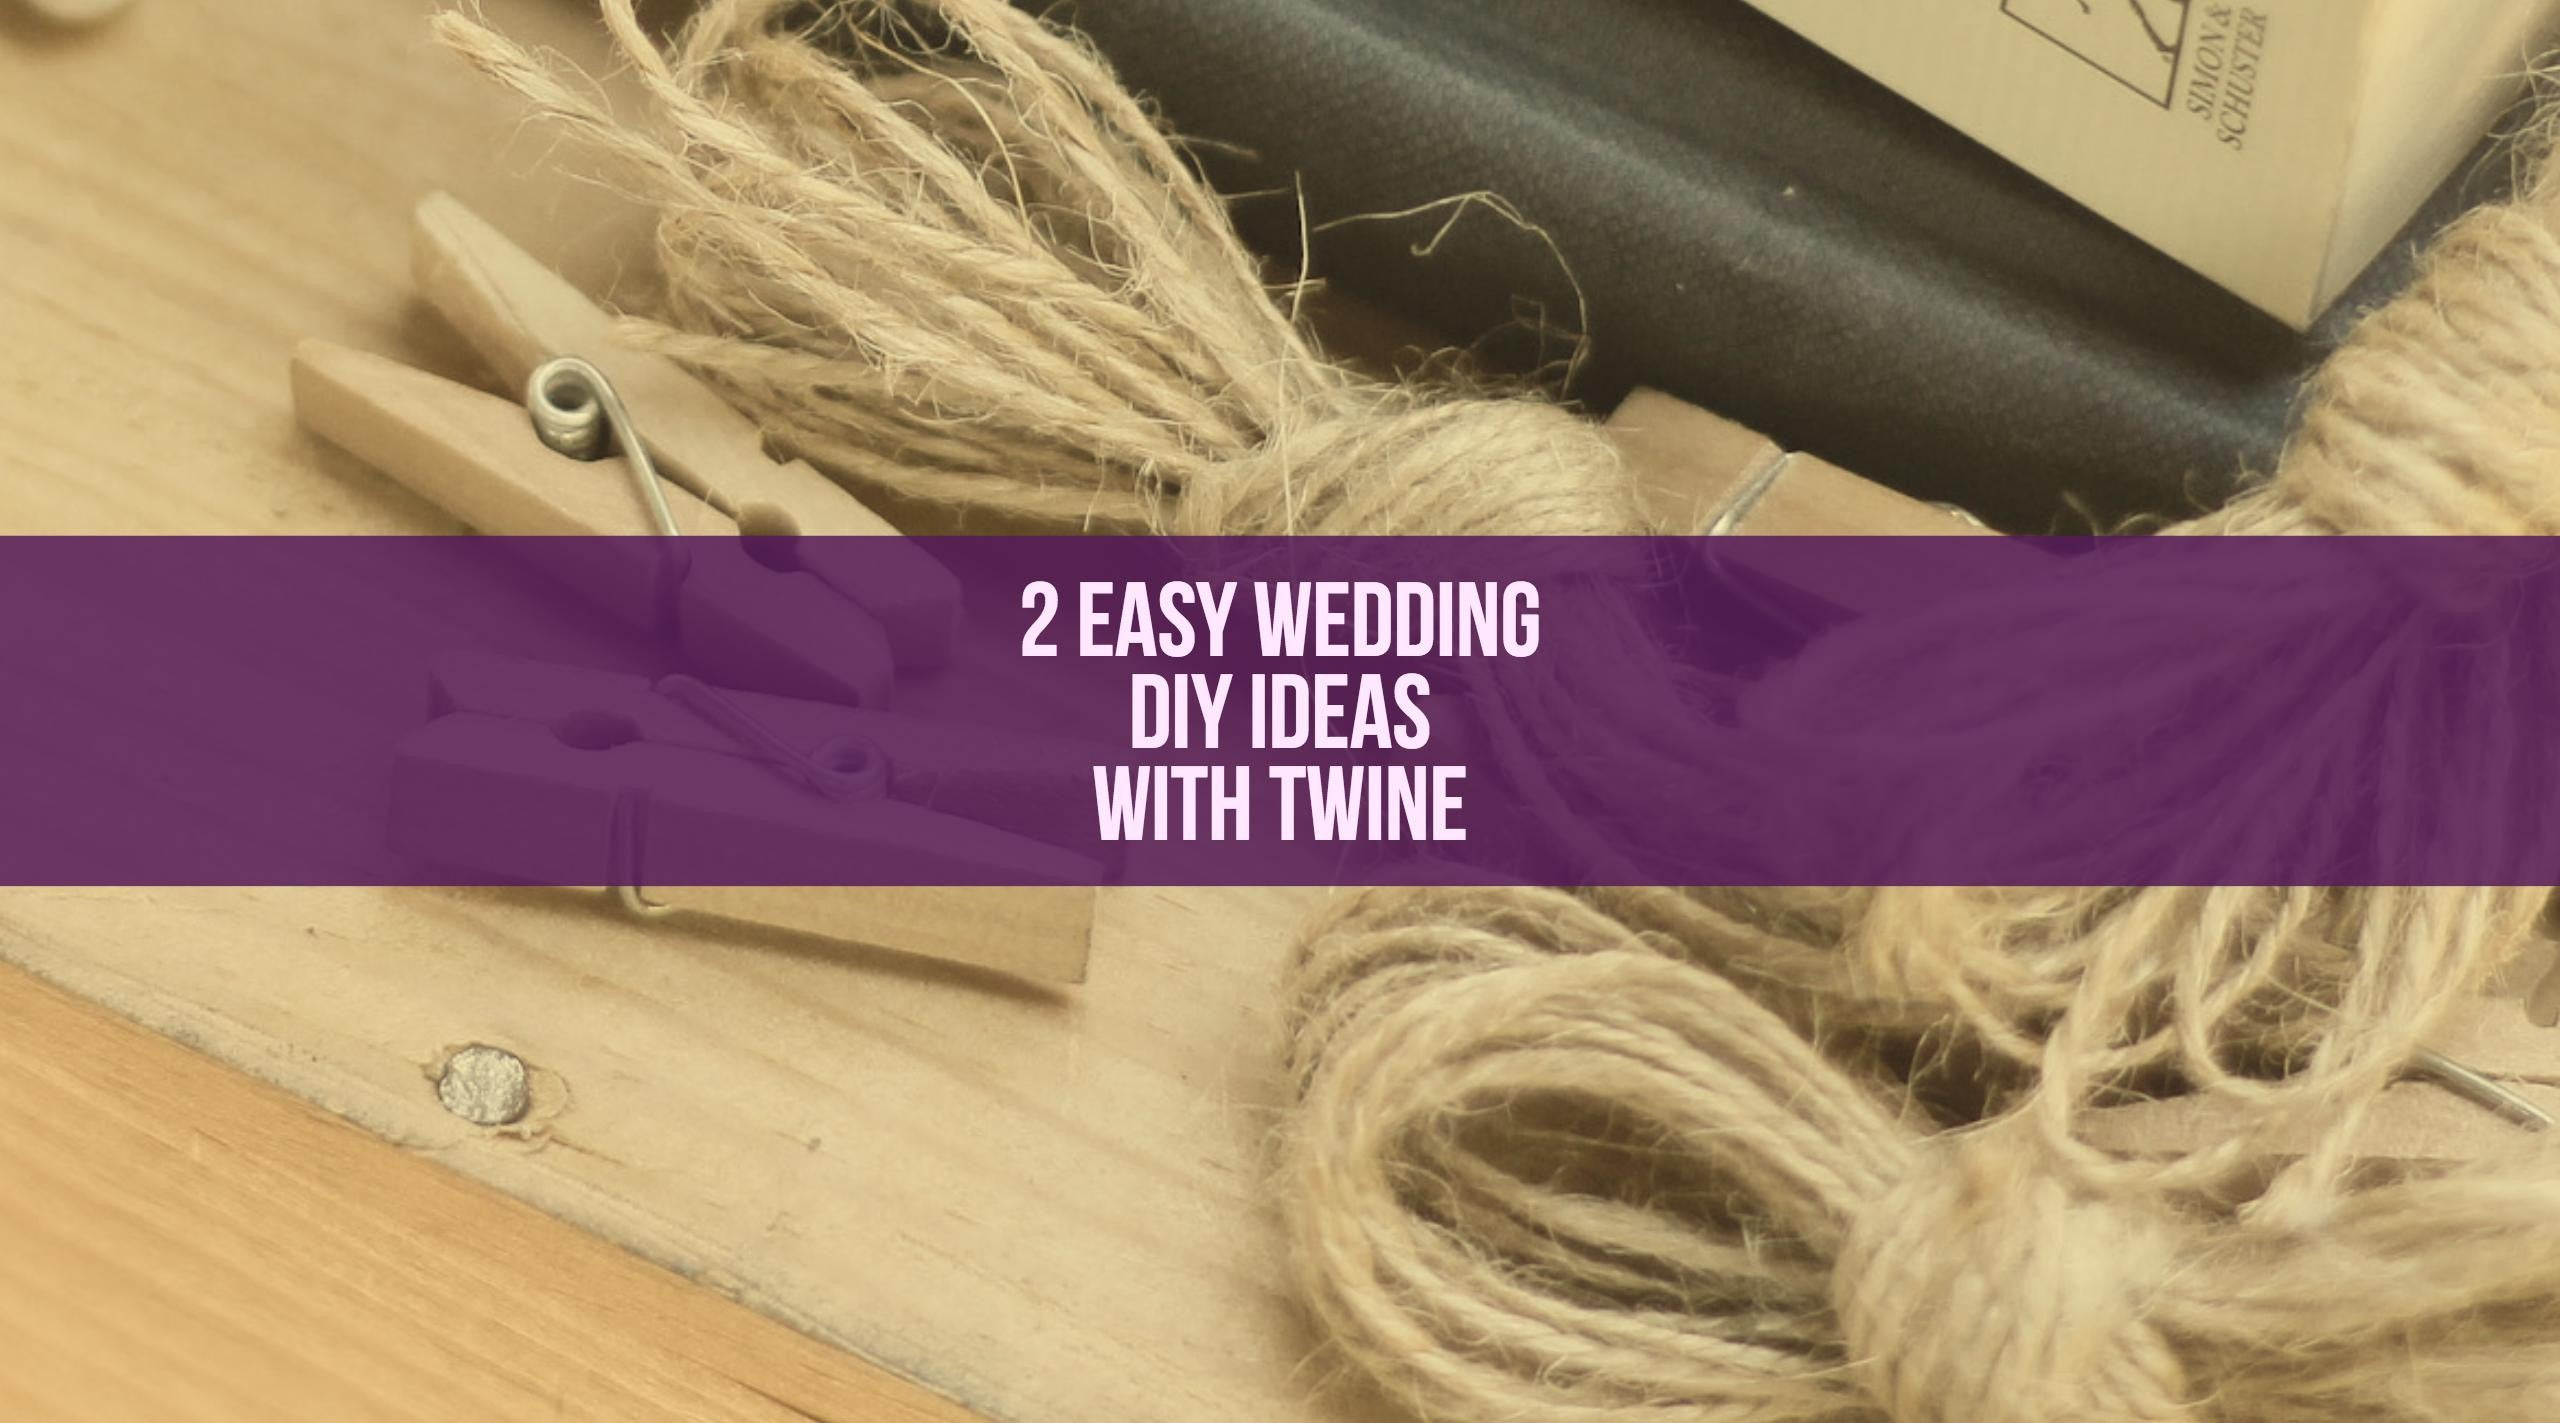 2 Easy Wedding DIY Ideas with Twine